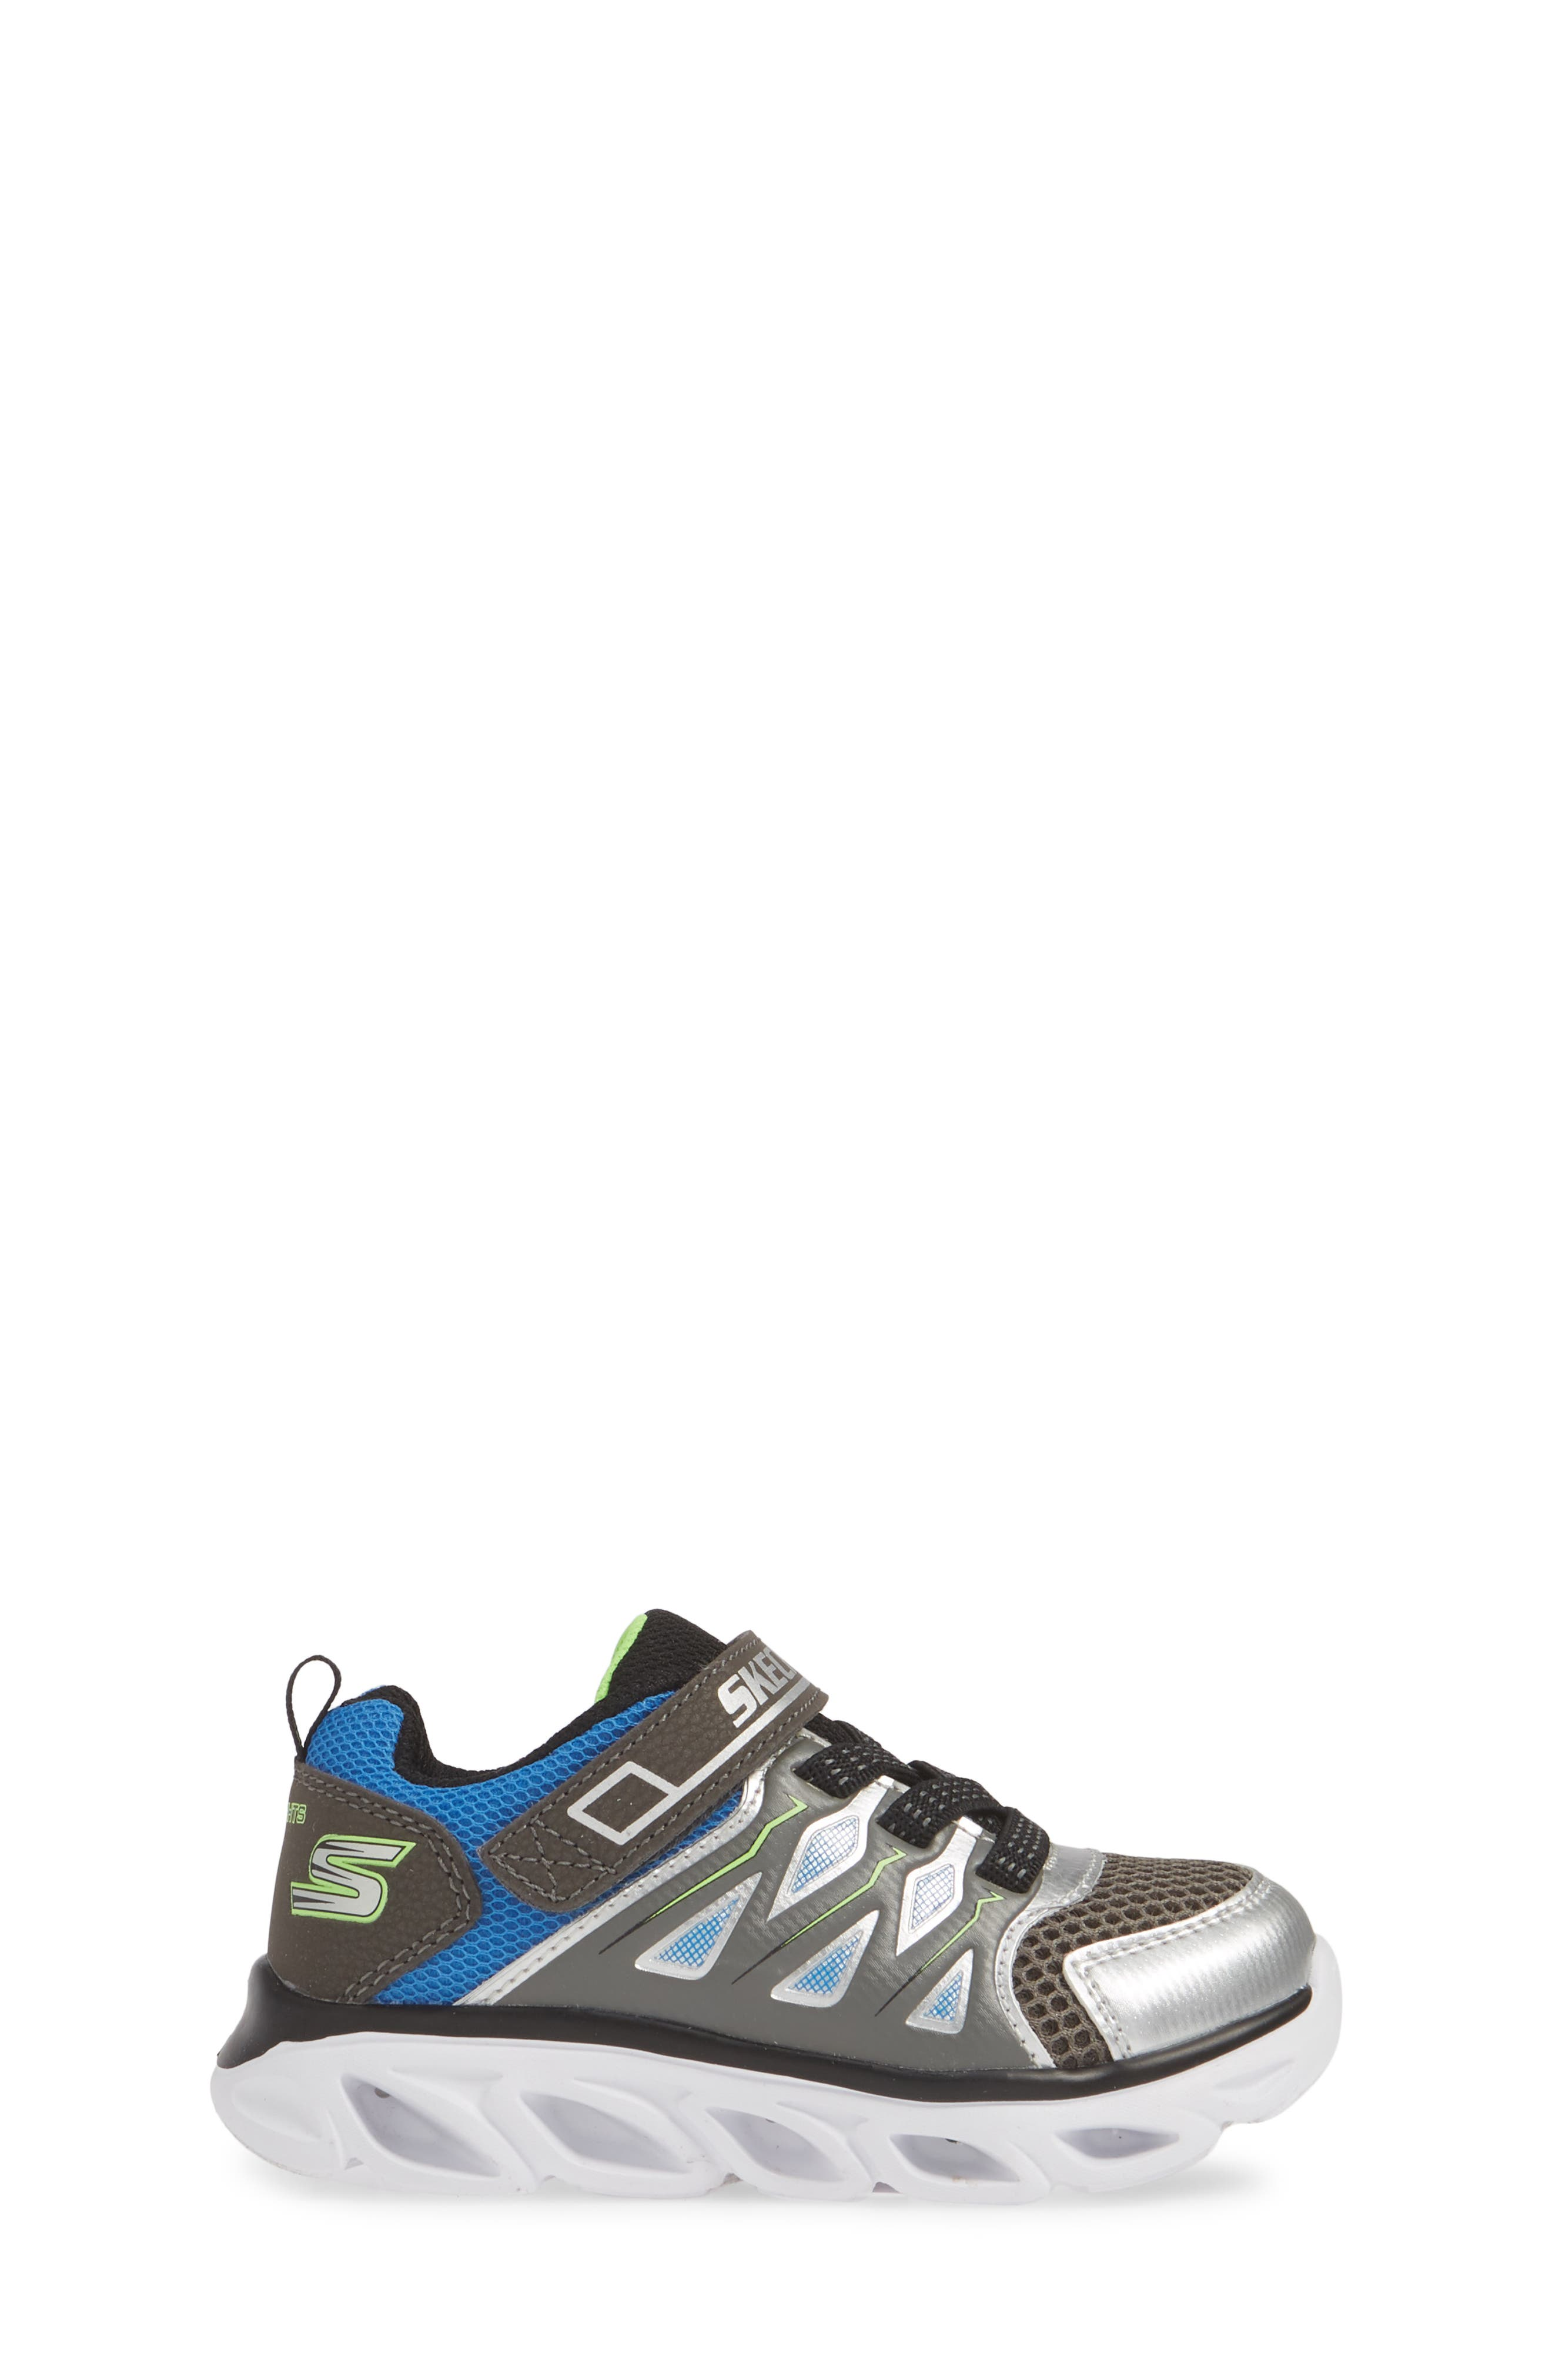 ,                             Hypno-Flash 3.0 Light-Up Sneakers,                             Alternate thumbnail 3, color,                             SILVER/ BLUE